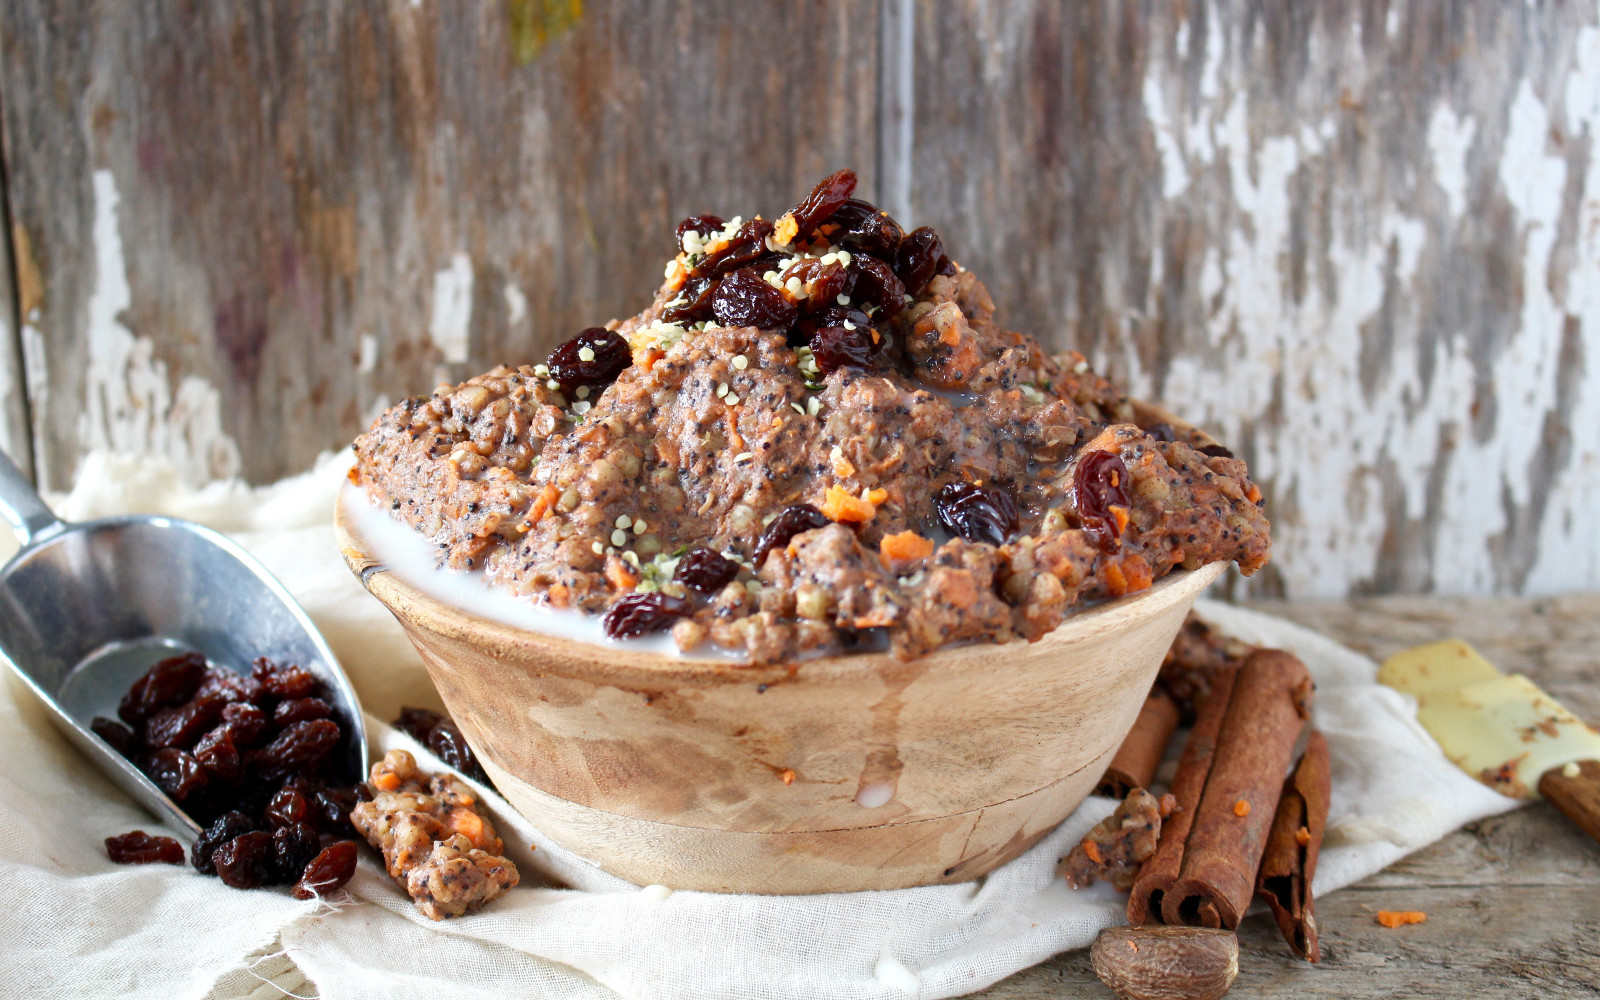 Carrot Poppyseed Buckwheat Porridge